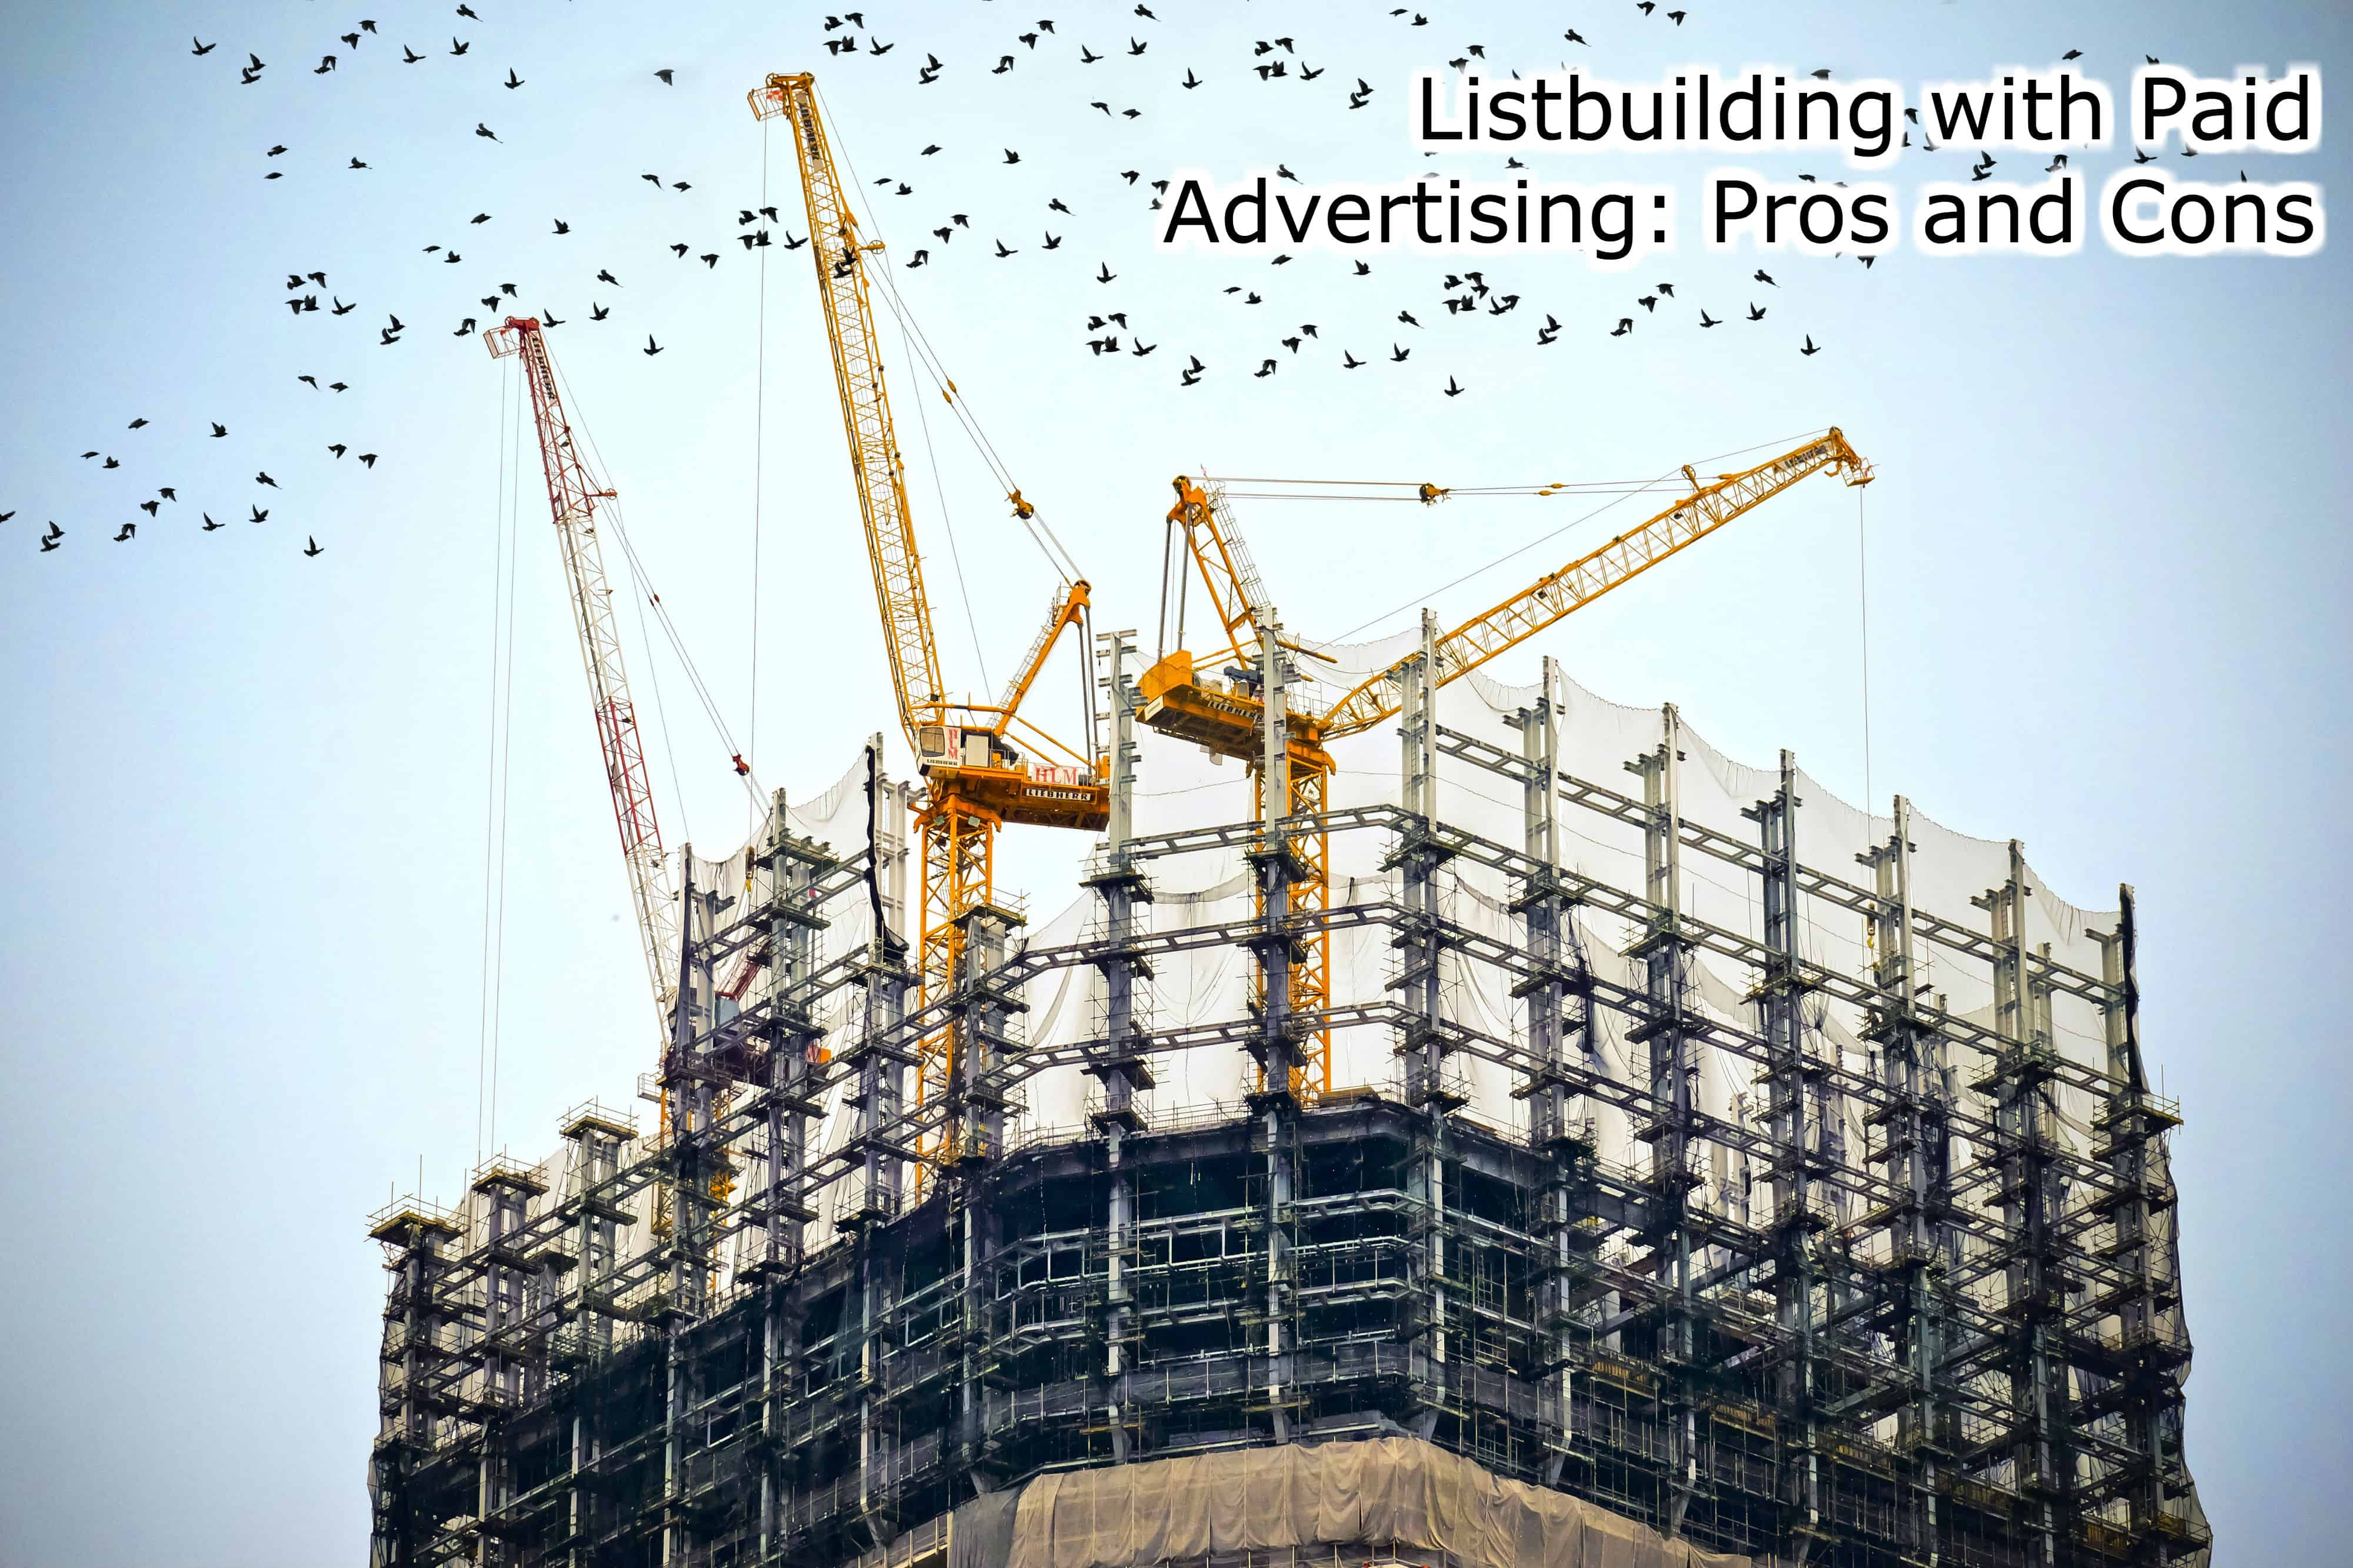 Listbuilding with Paid Advertising: An overview of pros and cons